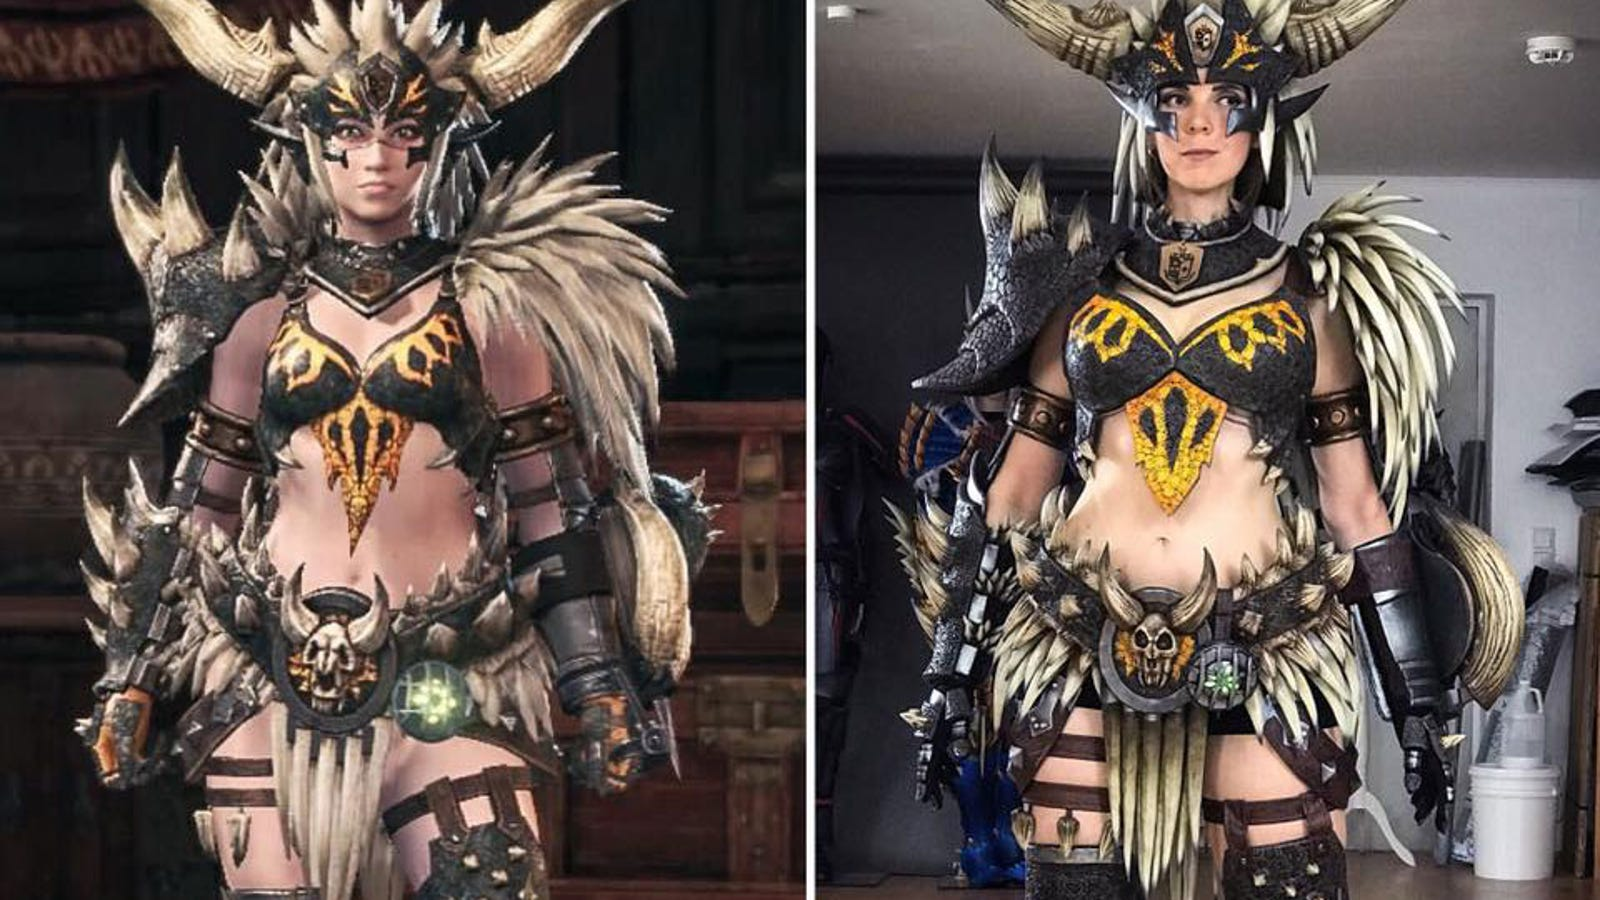 Check Out This Monster Hunter Cosplay